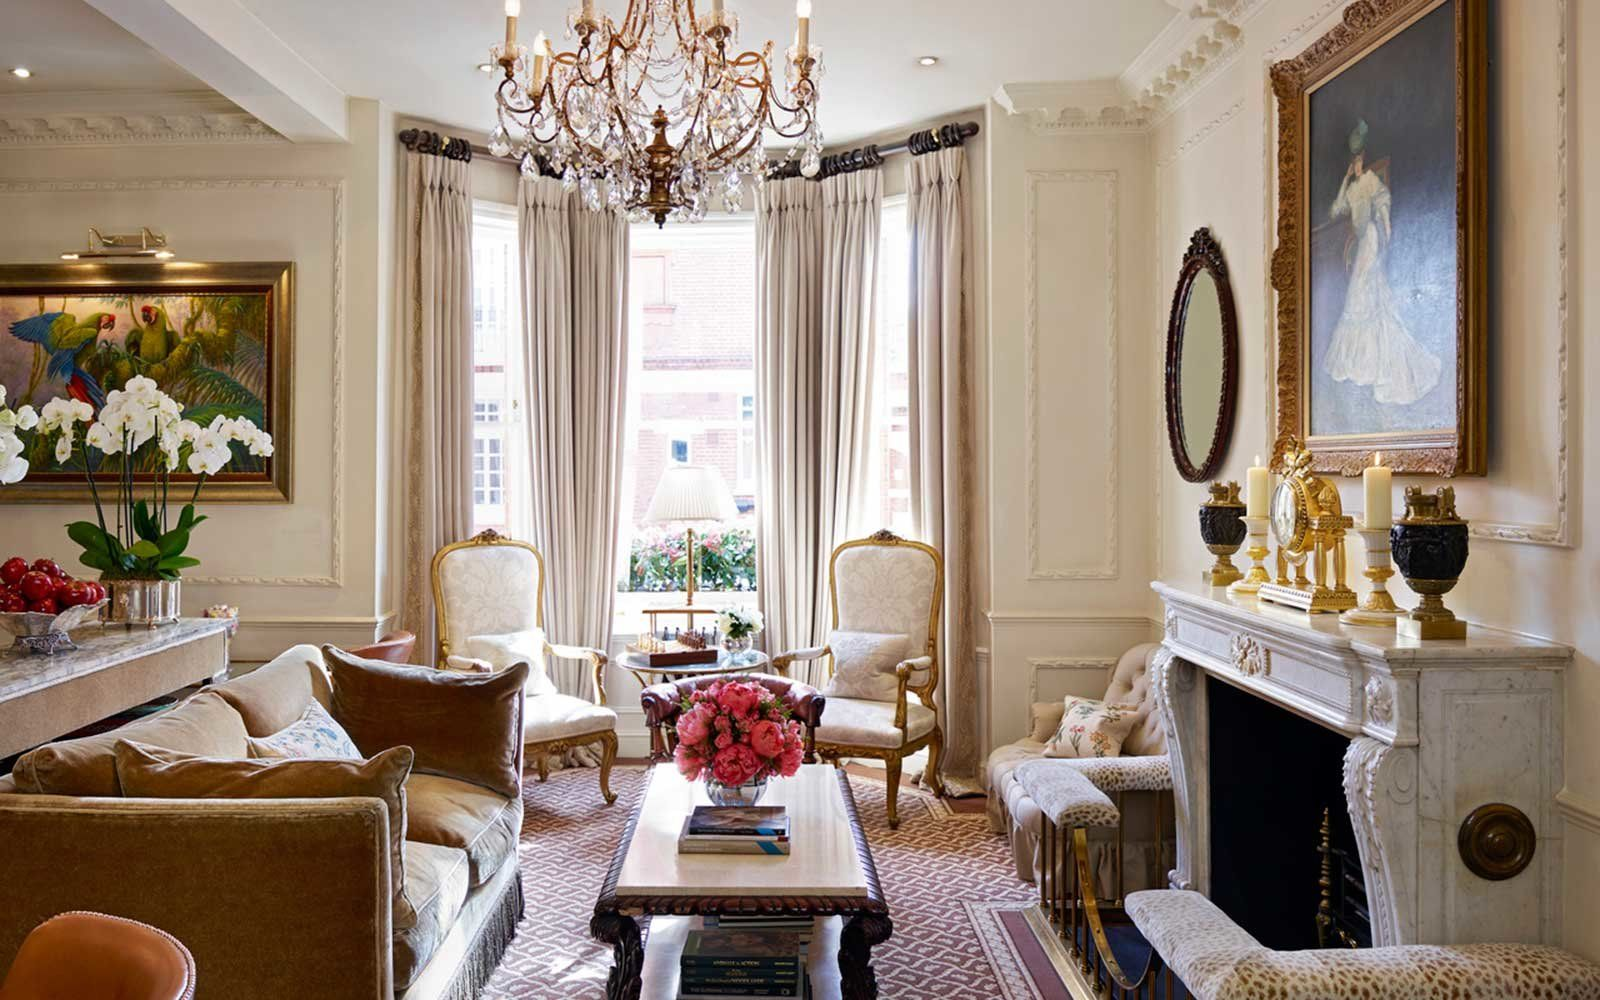 The Top 15 City Hotels in Europe | London paris rome, Rome and City